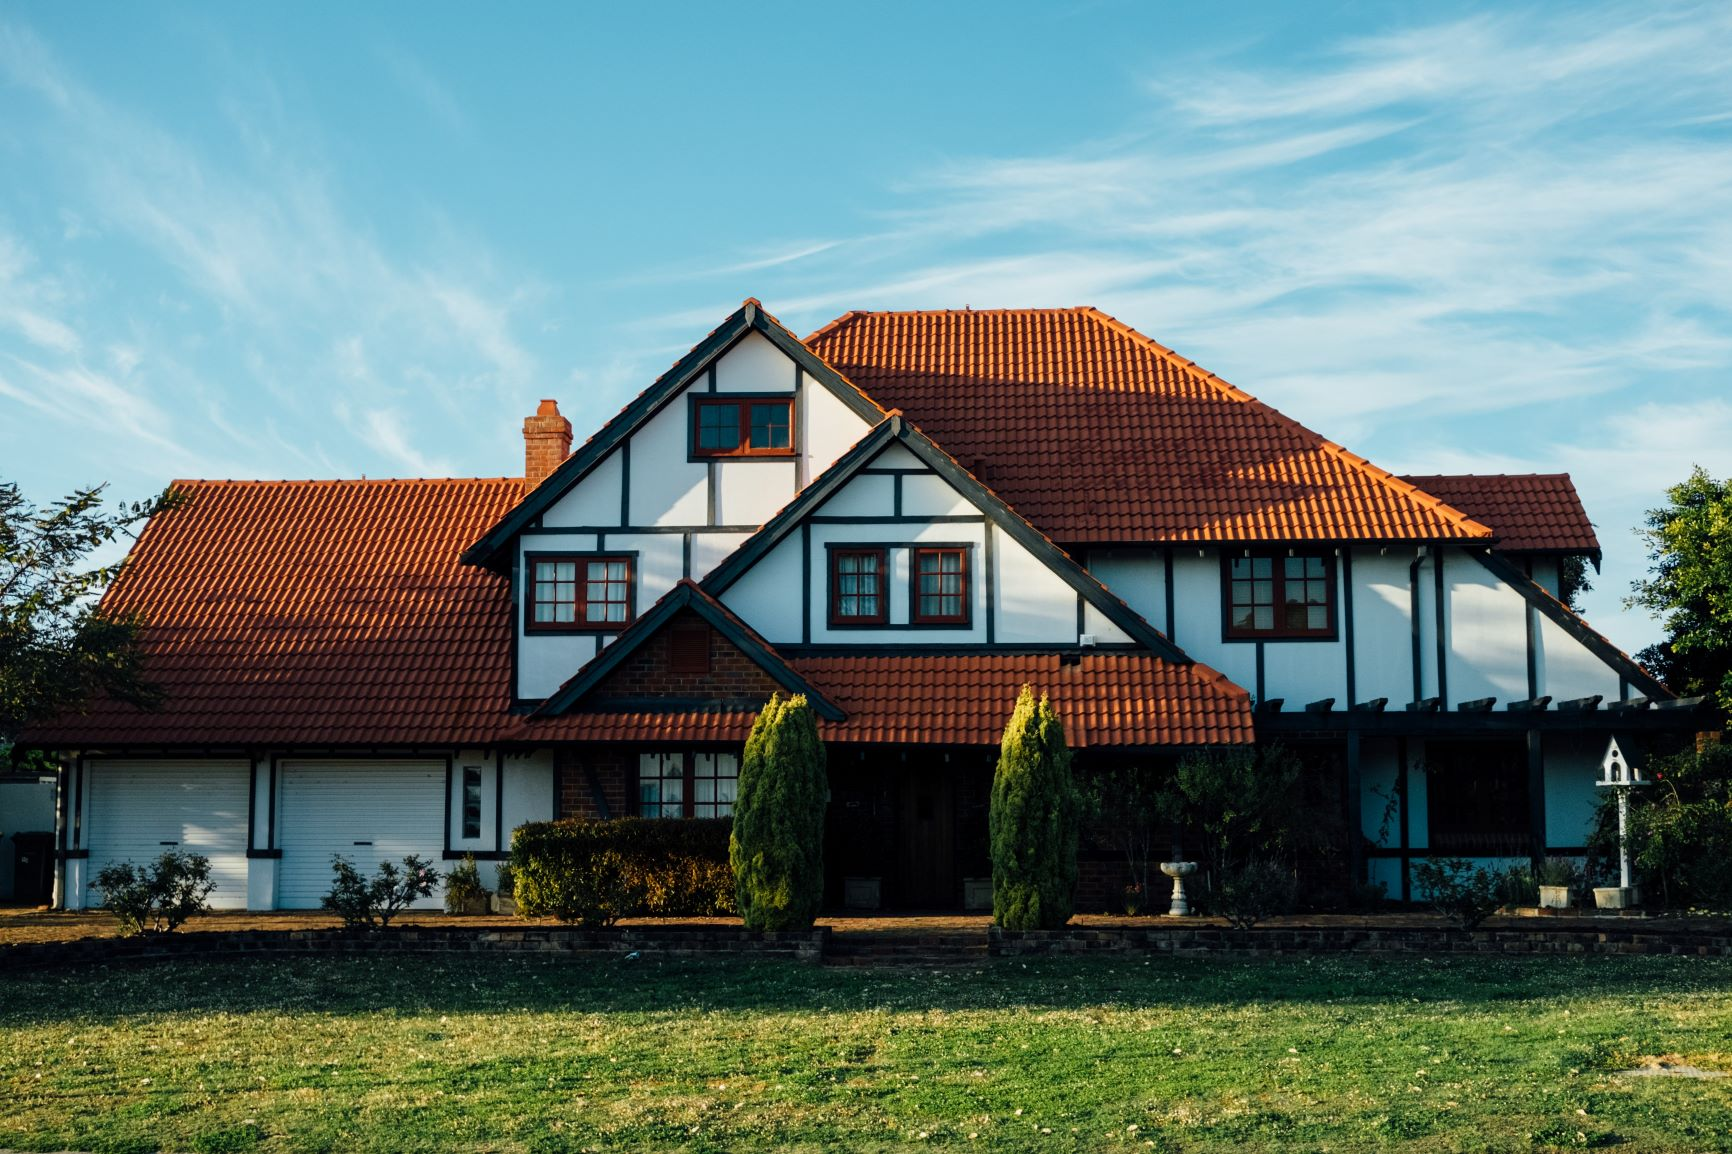 Part 2 – Residence Nil Rate Band – Potential planning considerations